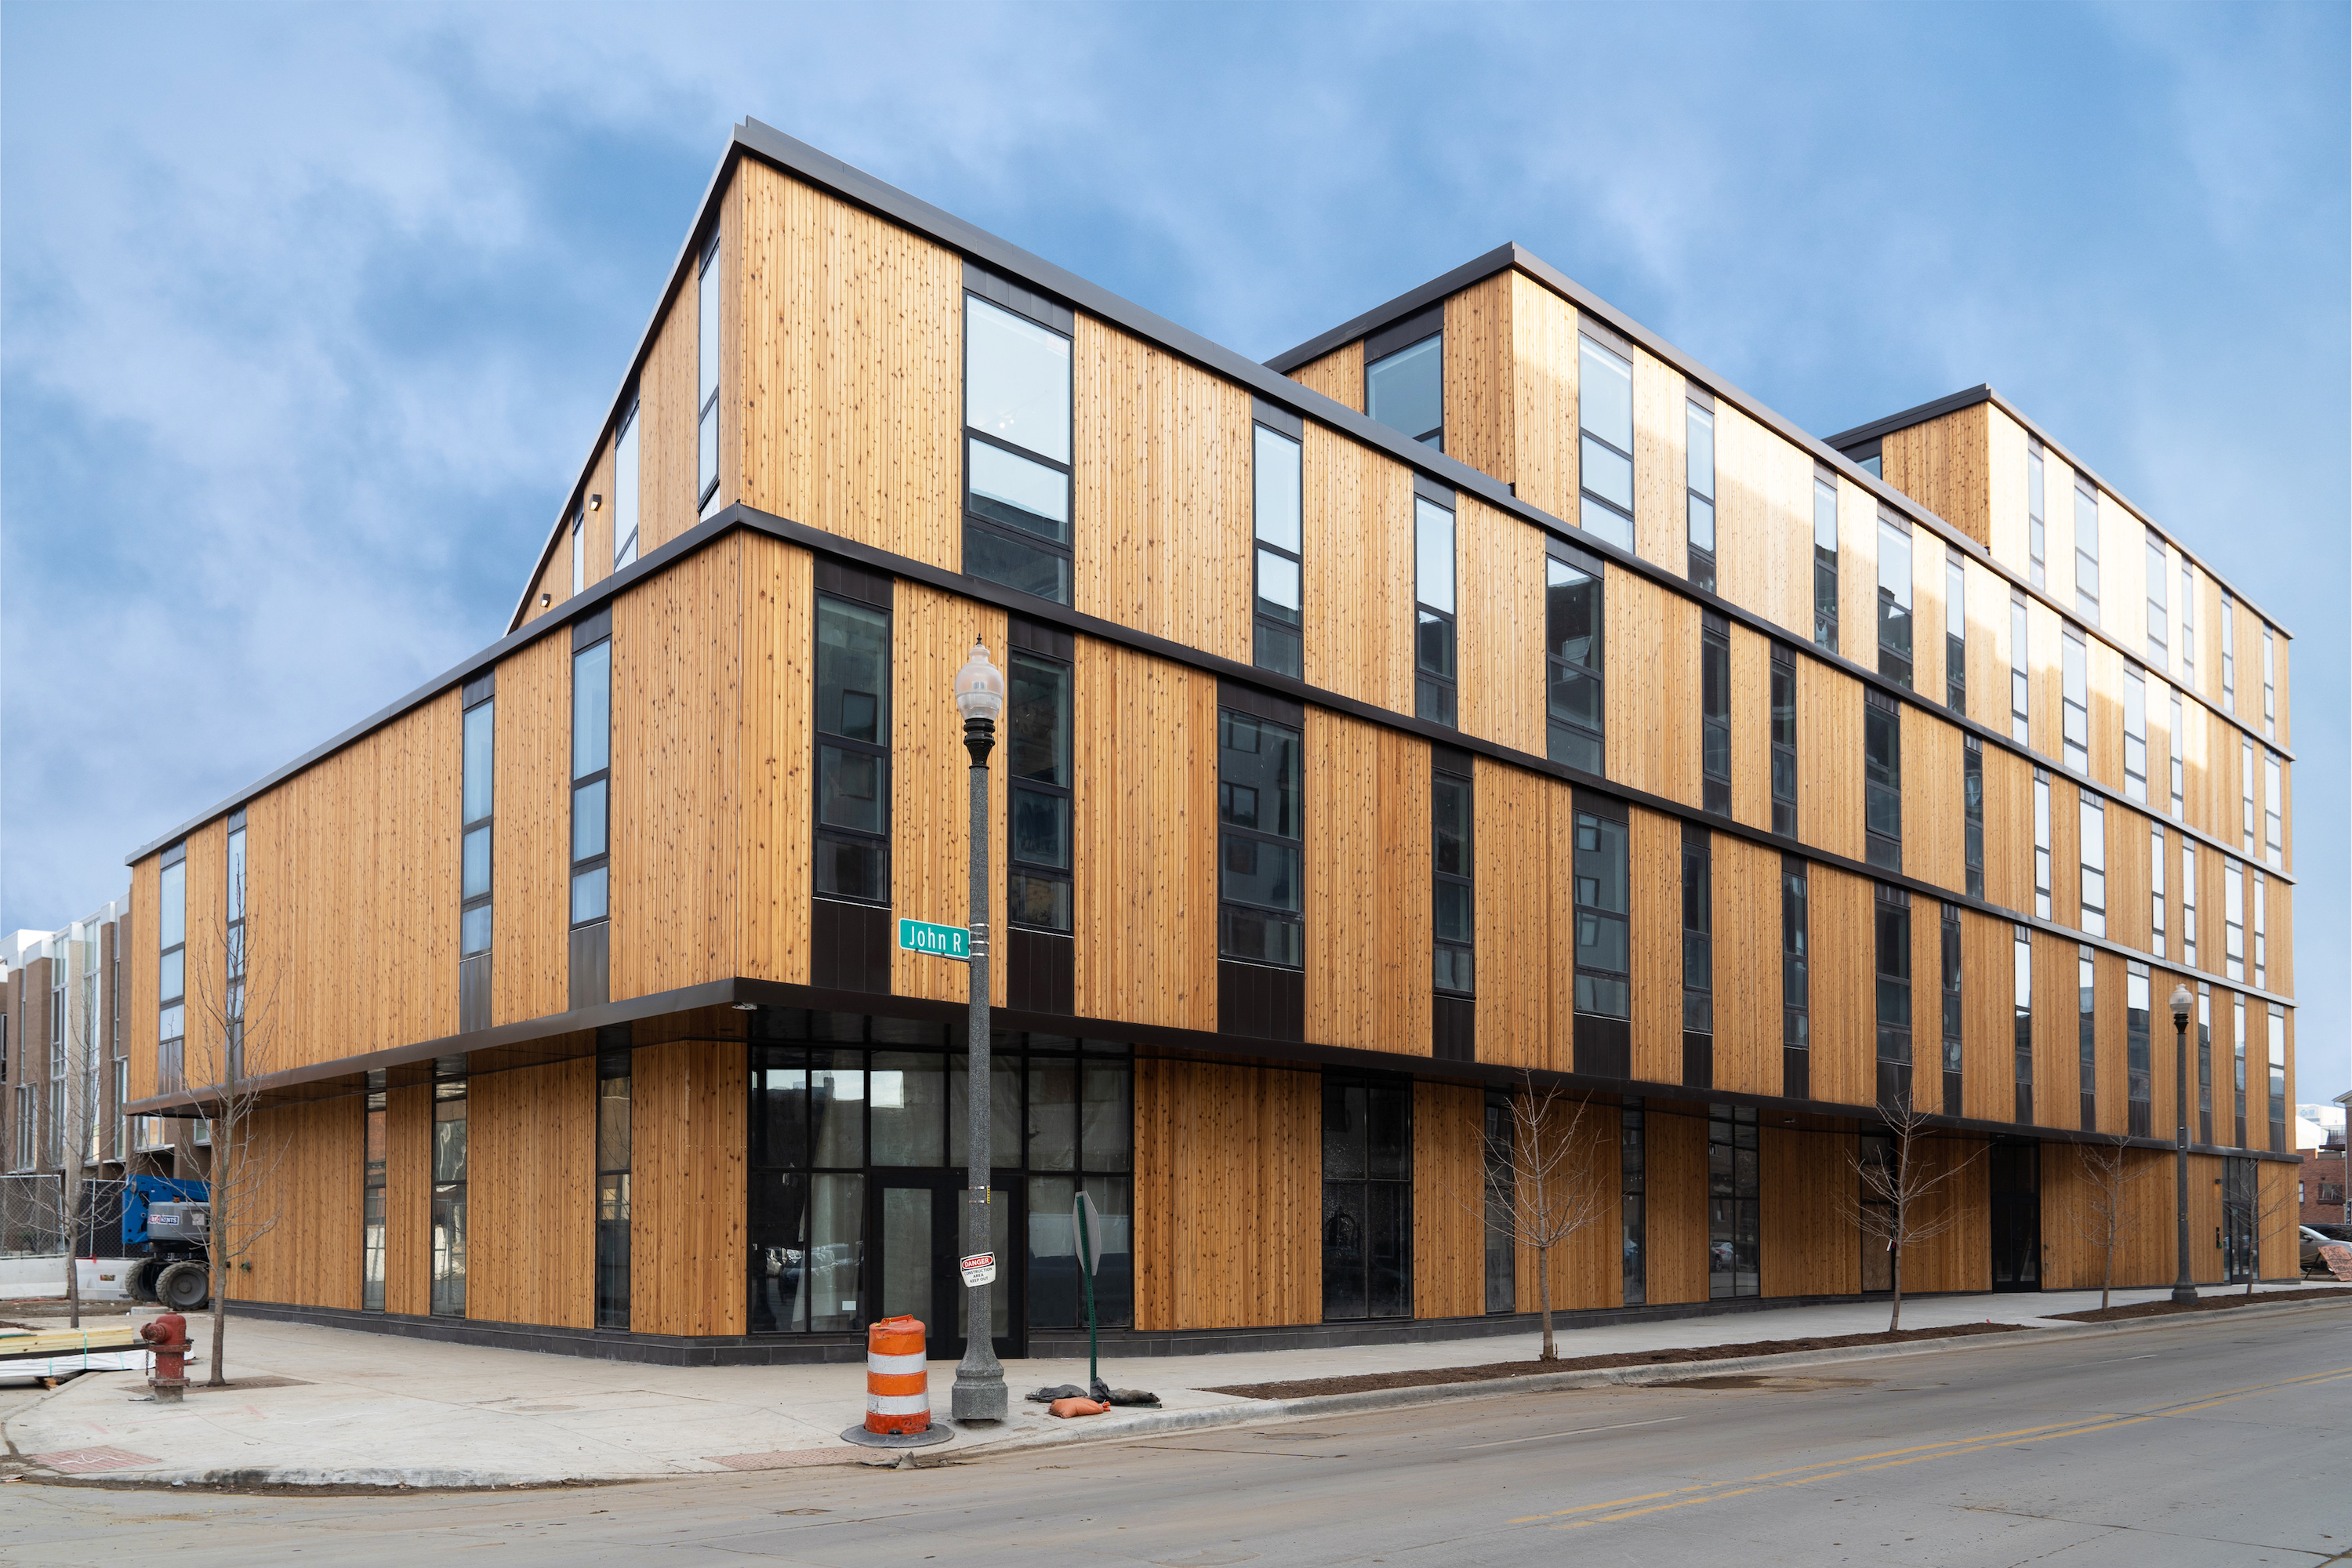 A four-story building with wood-cladding and narrow windows. It's rectangular with each floor slightly smaller.